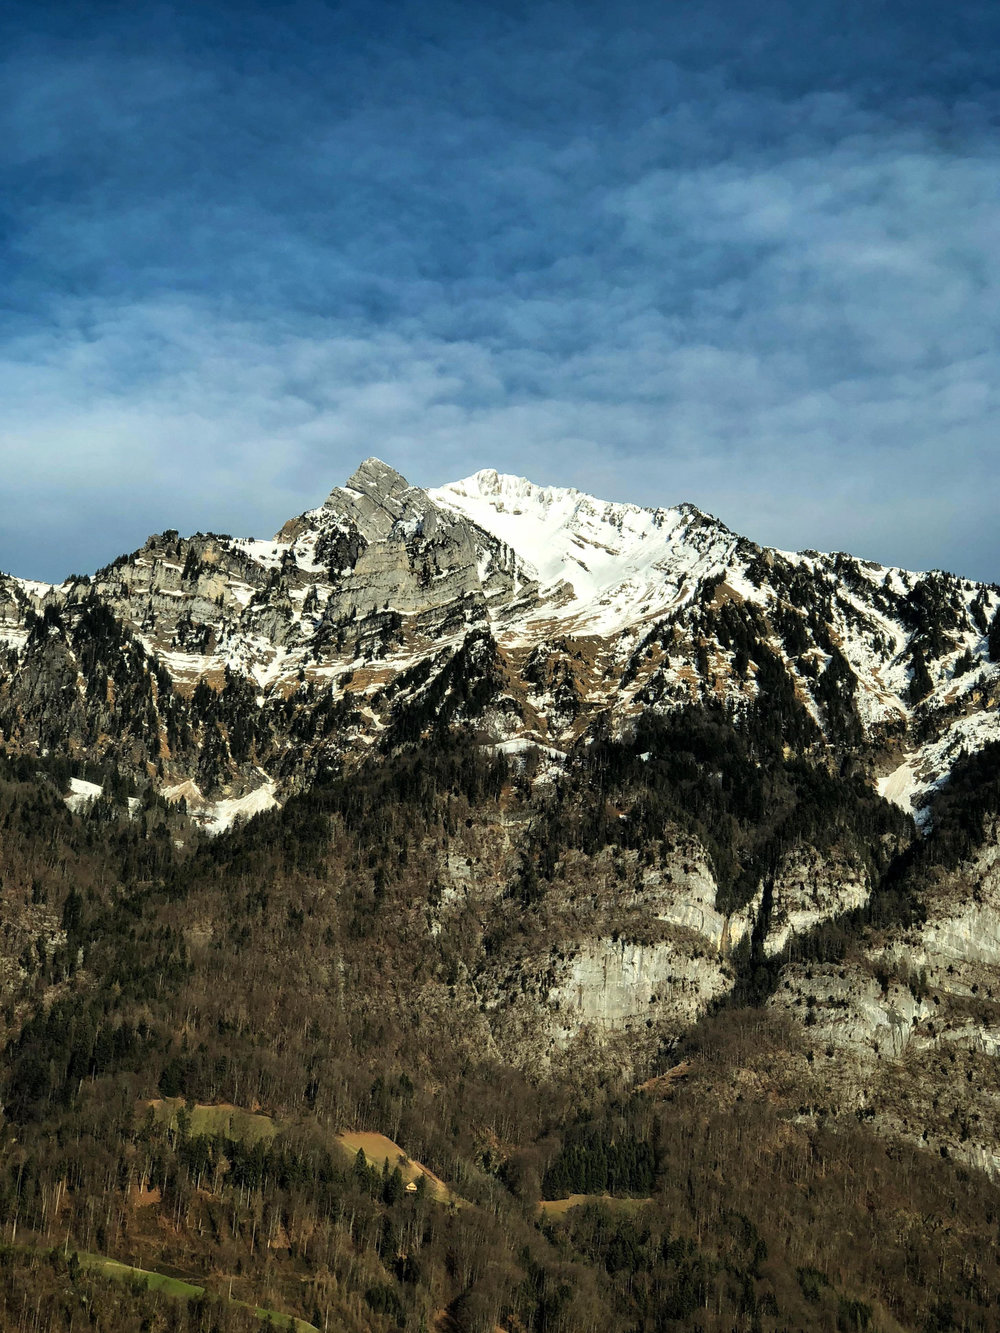 Impressive mountain walls greet you en route to Davos